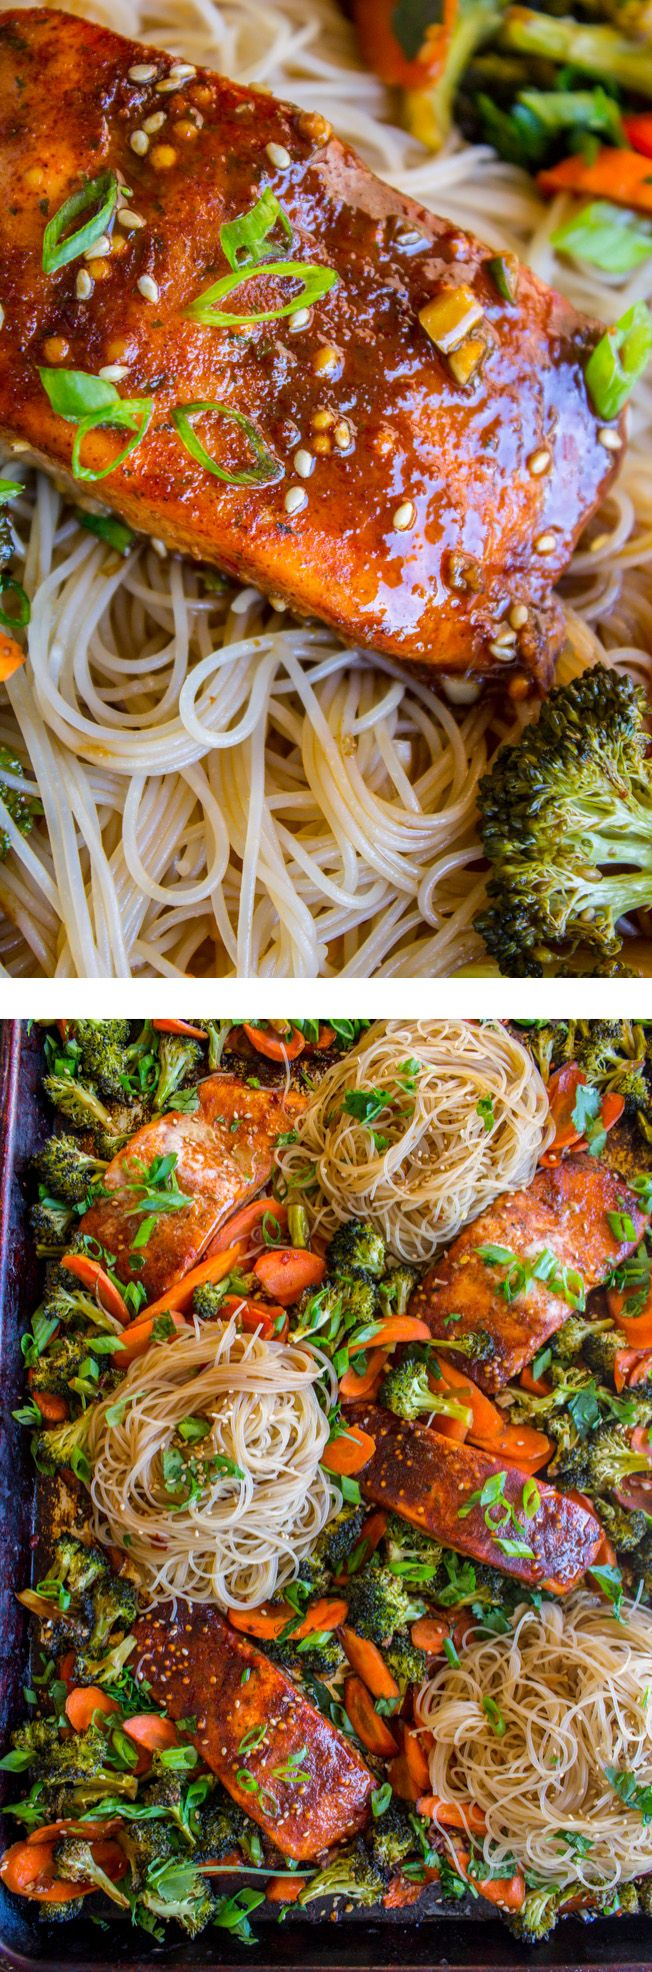 Sheet pan meals are the best! I'm a total convert guys! This one features chili spiced salmon with broccoli, carrots, and rice noodles. It is super easy to throw together, done in 30 minutes! Guys, there's an EMERGENCY going on over here. Our dishwasher broke. Like, for real this time. It broke last week and …